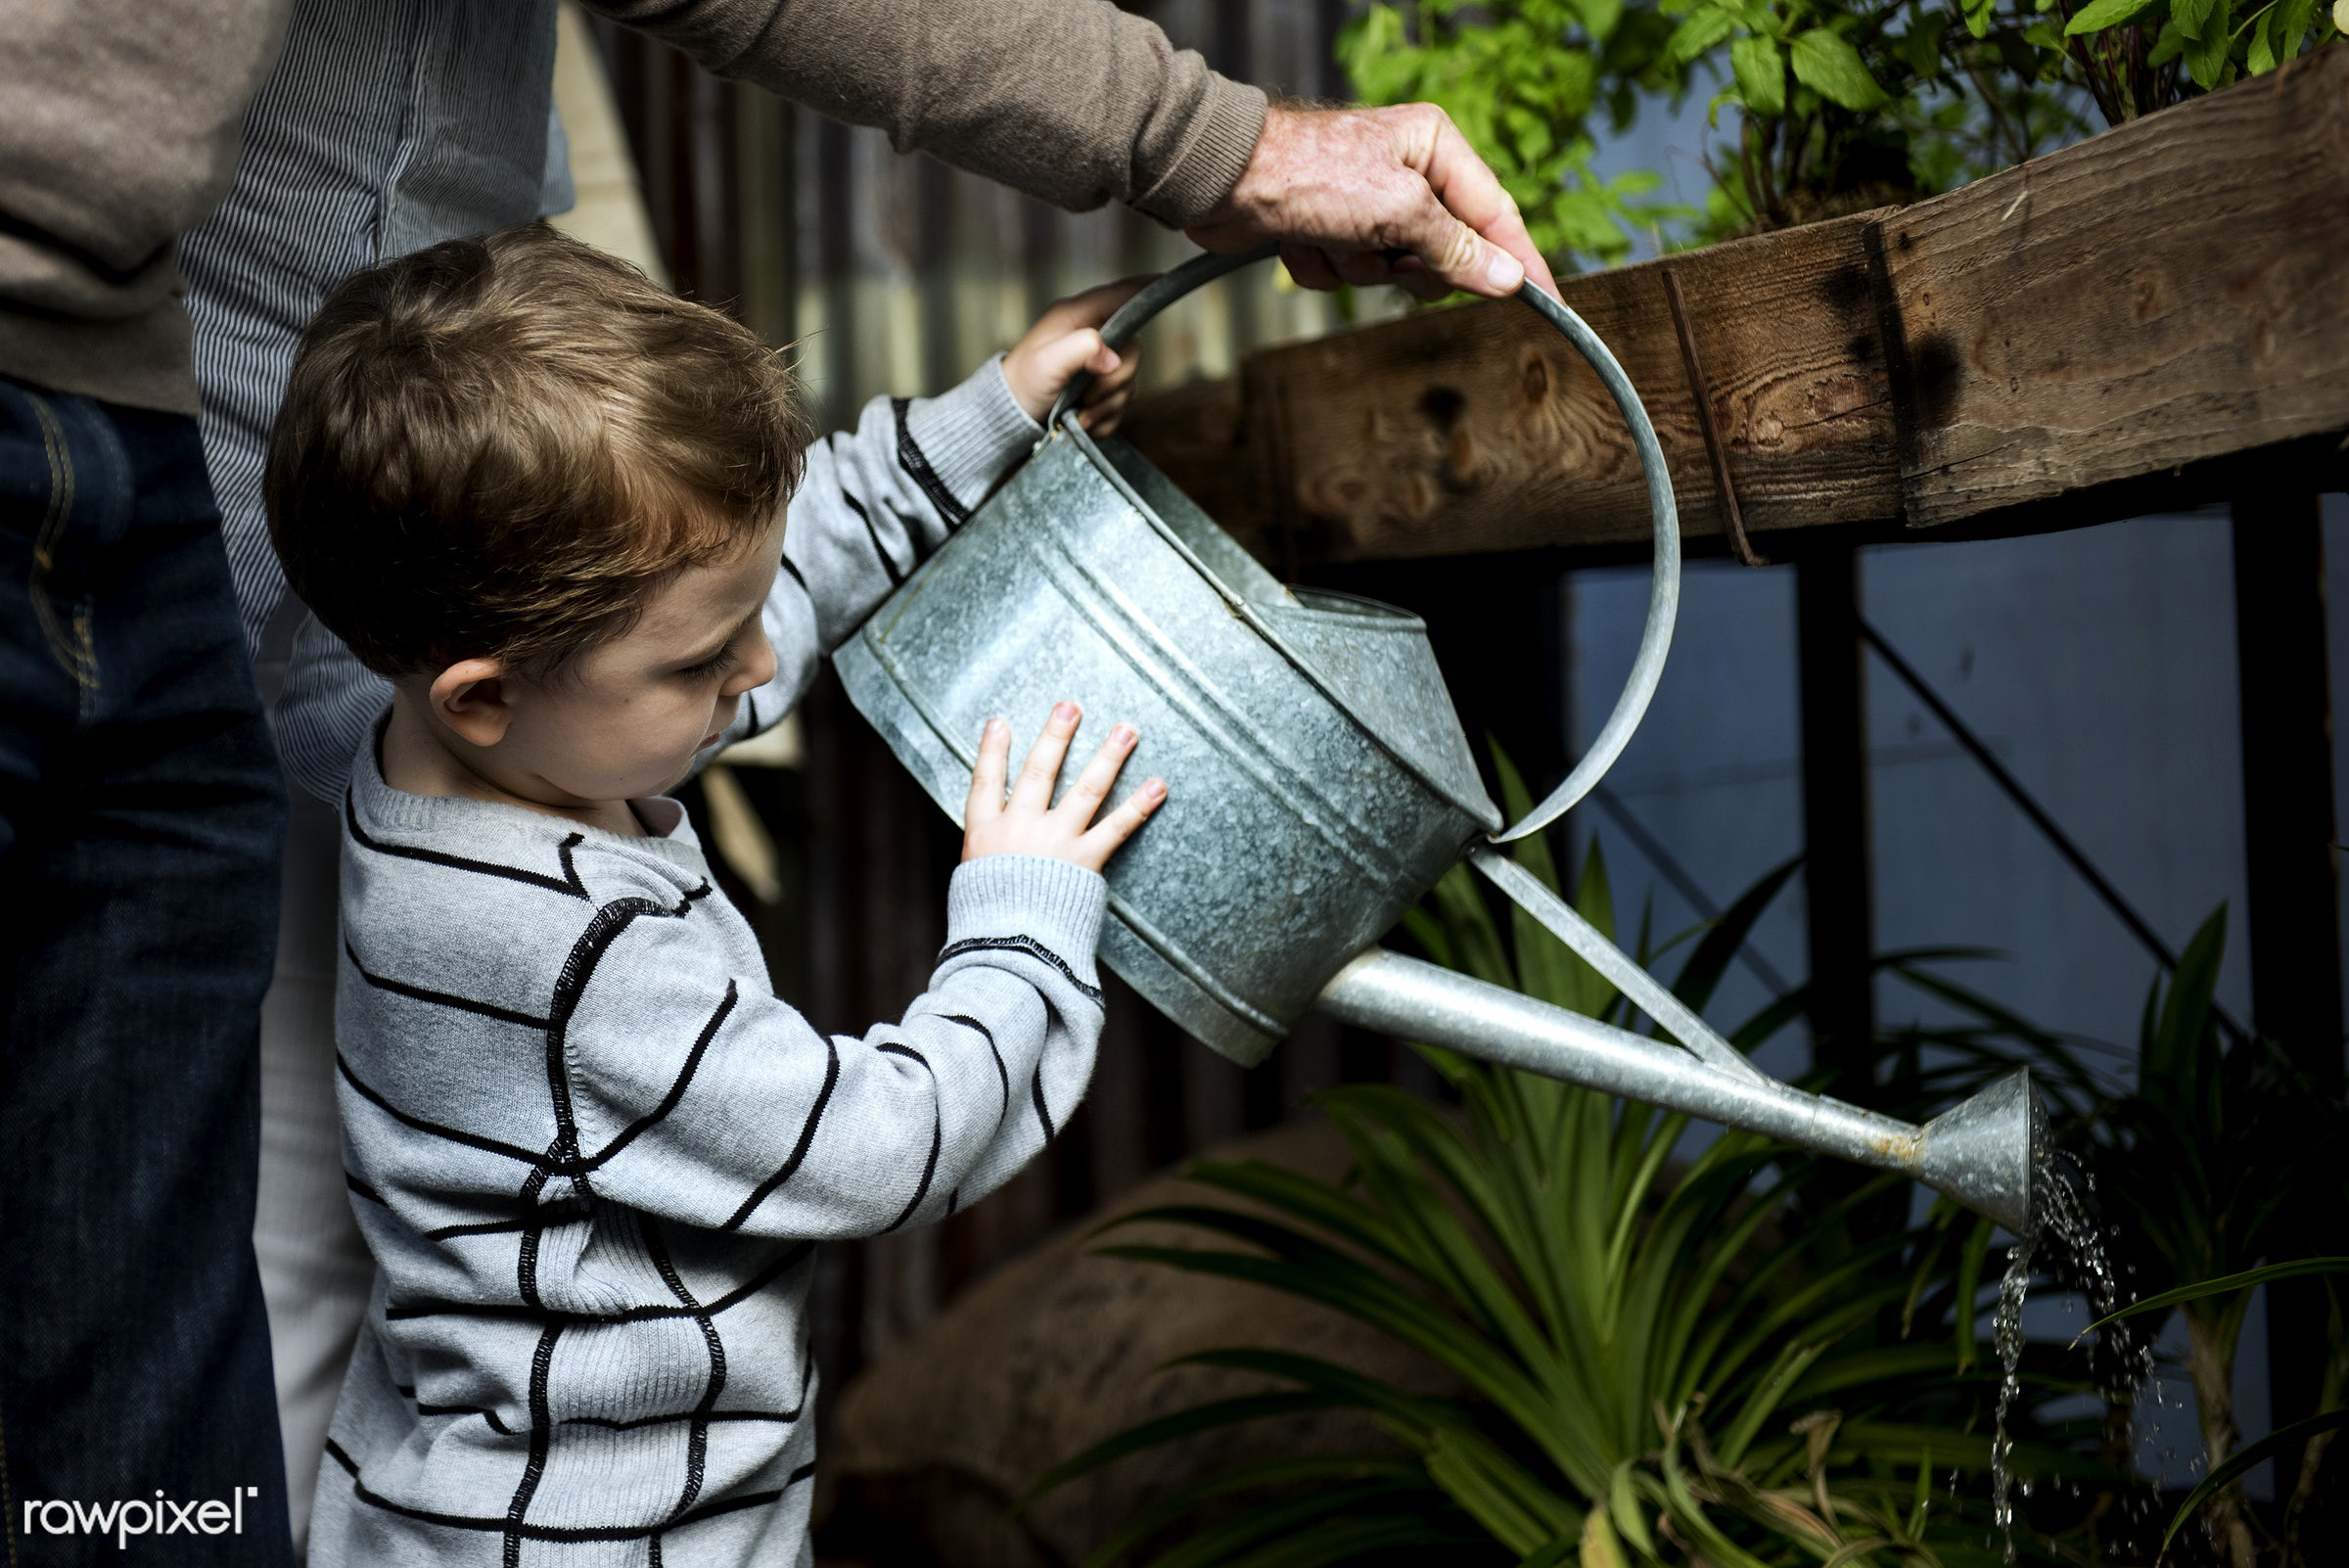 Man helping a young boy water the plants - young, kid, helping, learning, hobbies, watering, can, gardening, activity,...